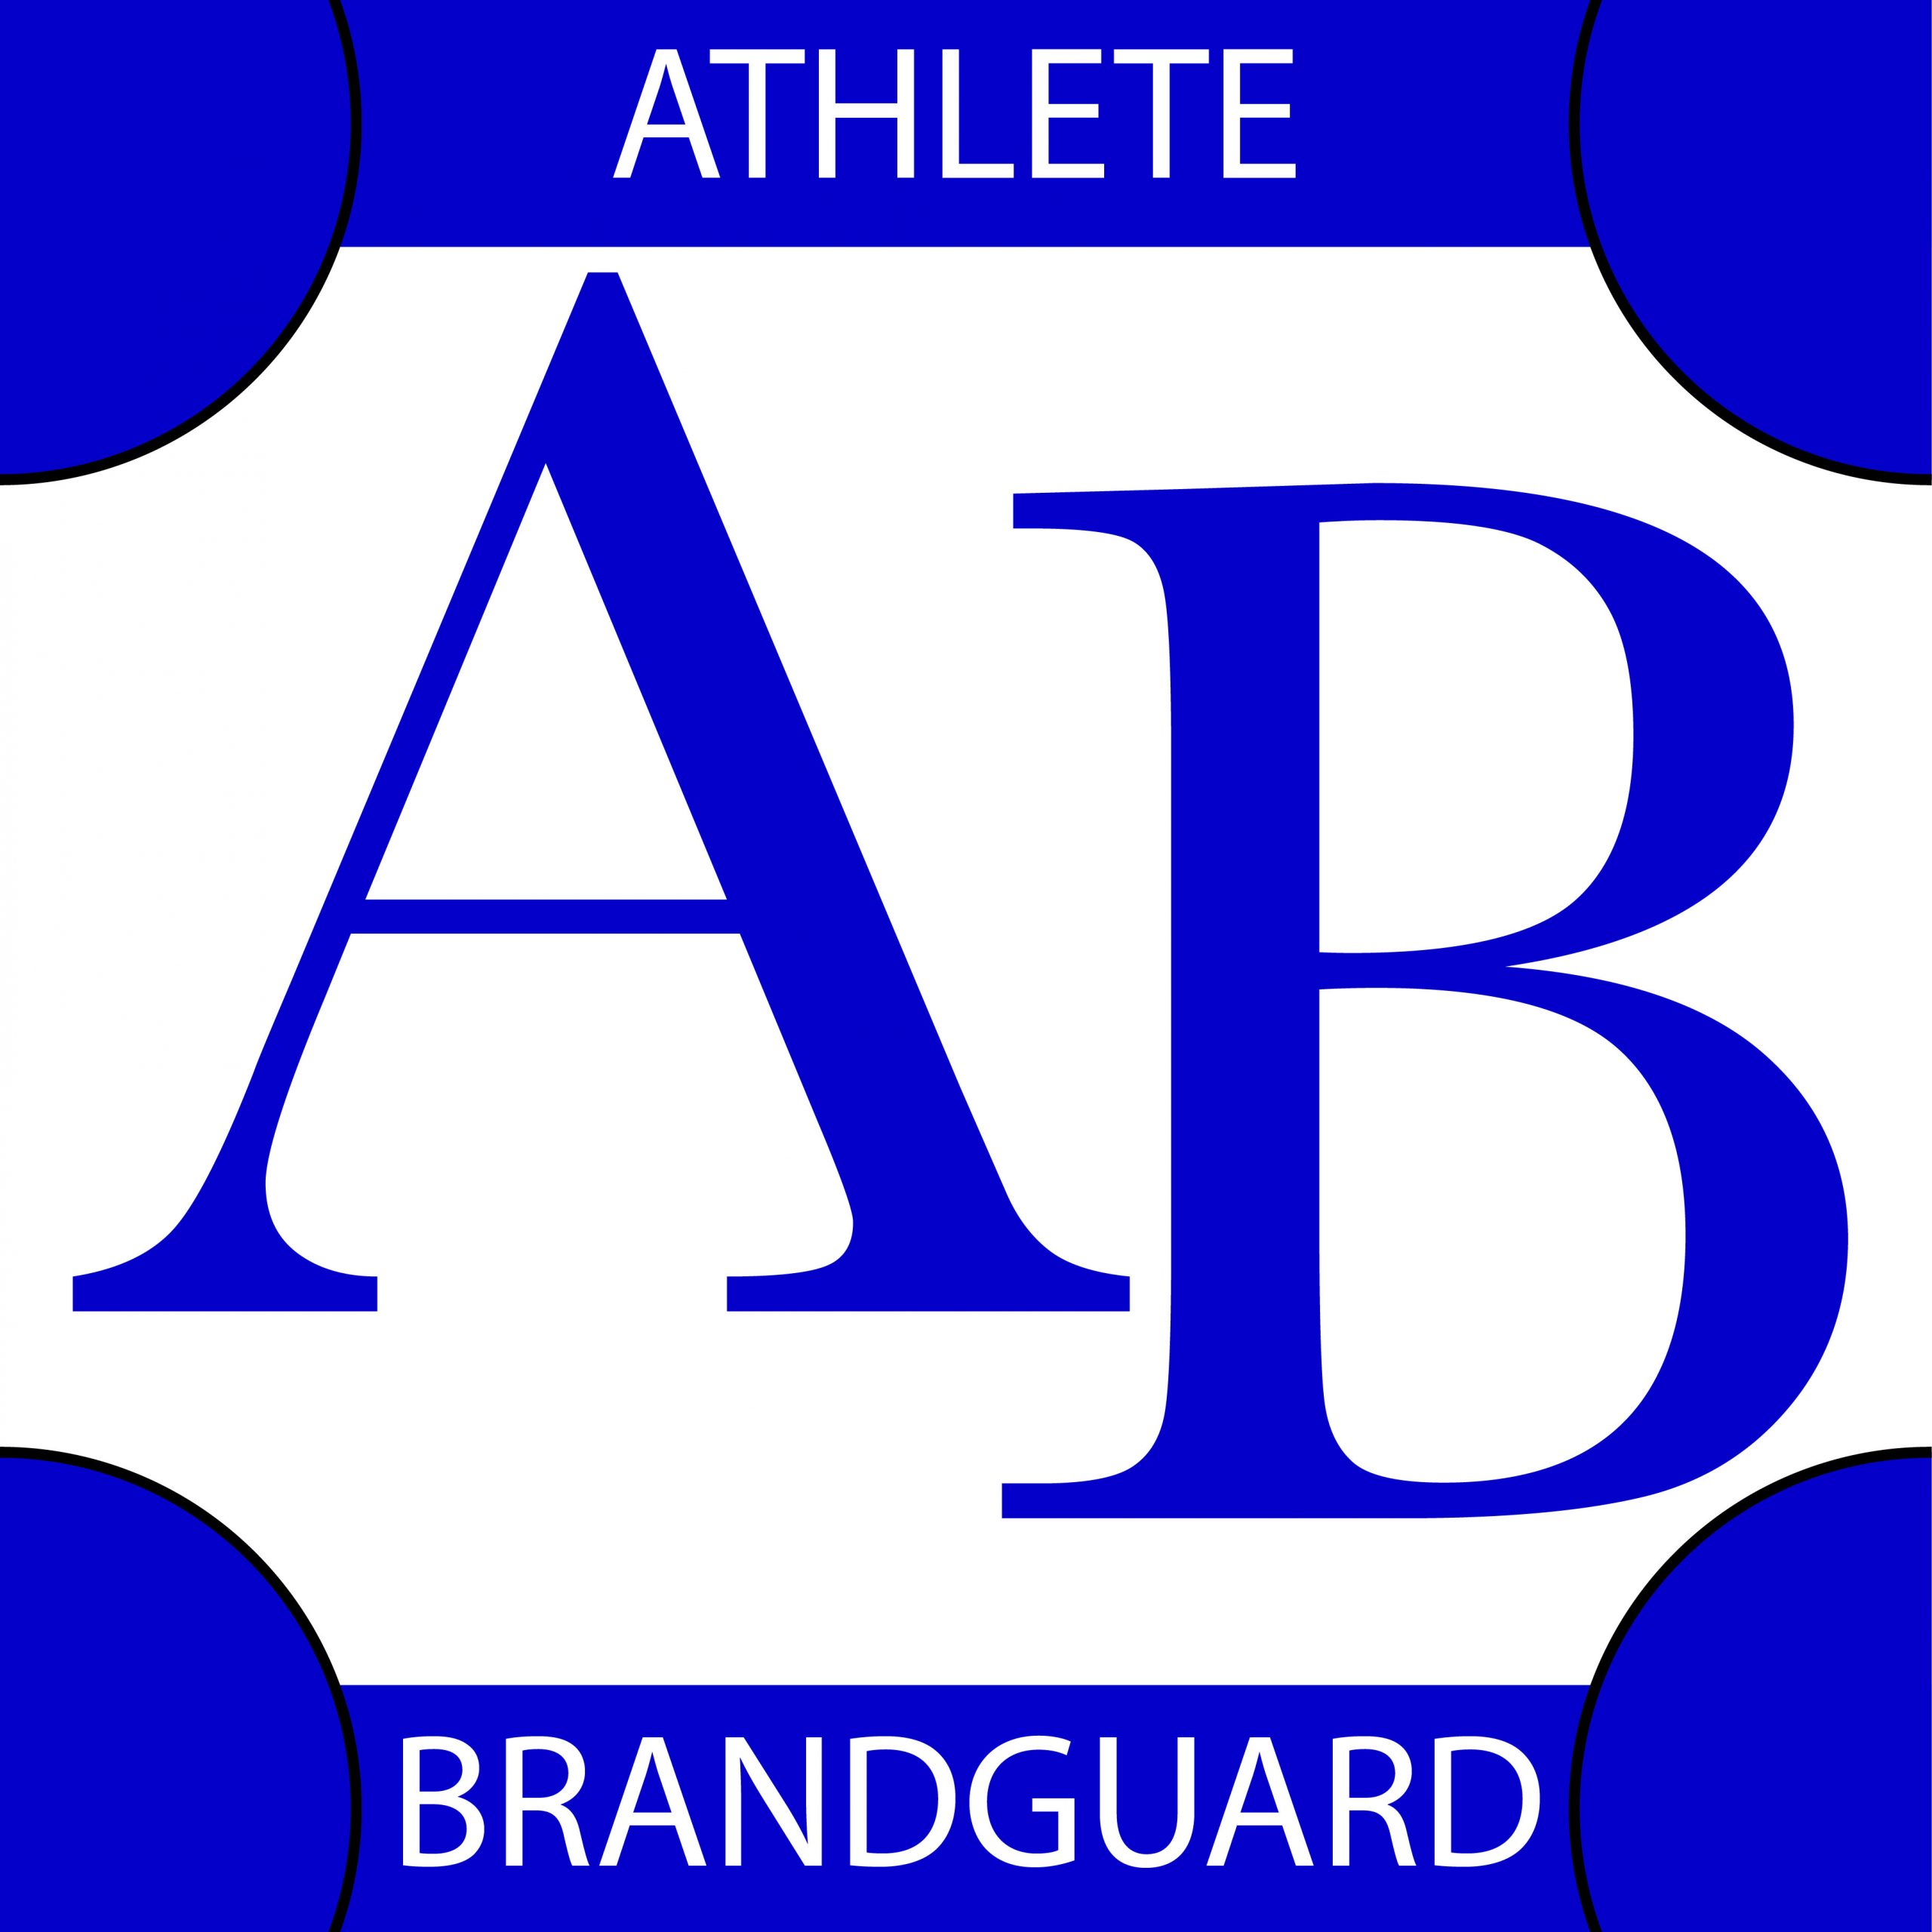 Athlete Brandguard